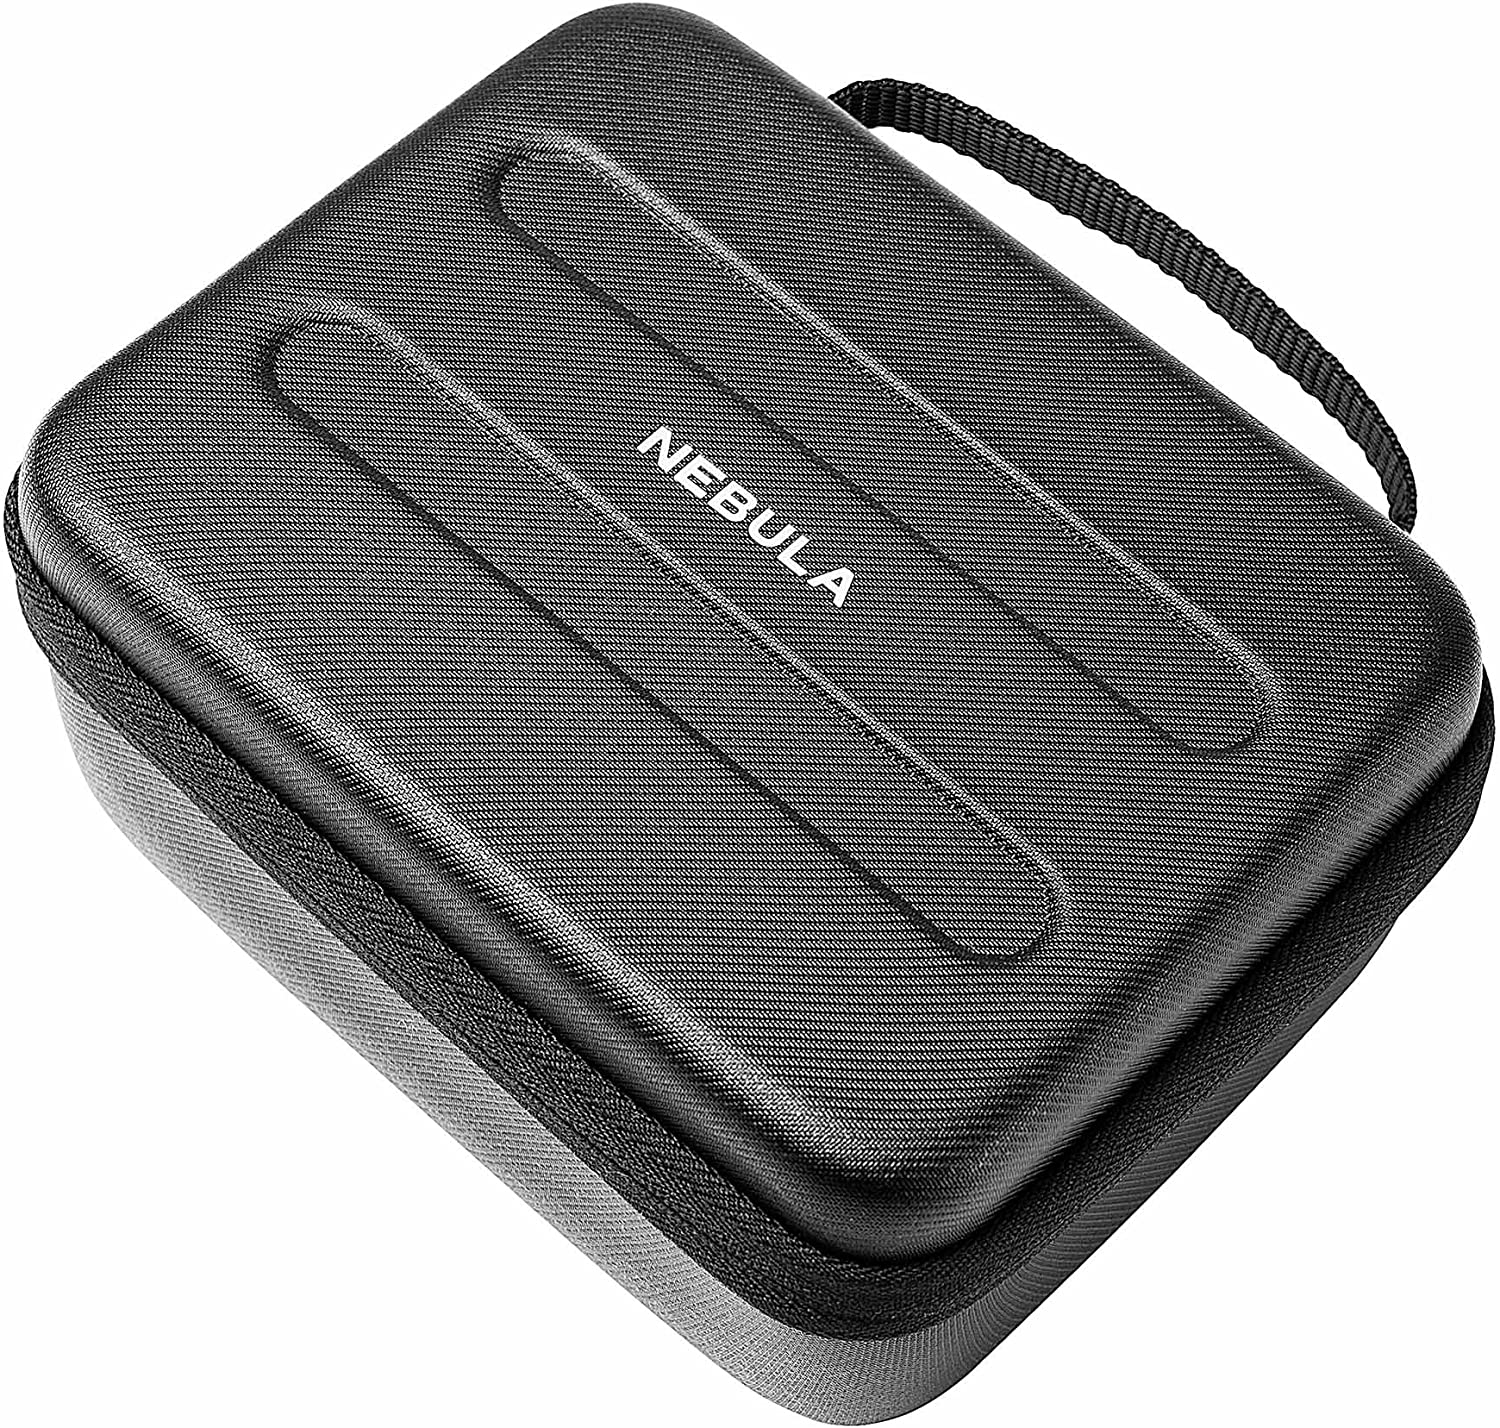 Anker Nebula Capsule Official Travel Case for Nebula Capsule Pocket Projector,Polyurethane Leather, Soft Ethylene-Vinyl Acetate Material, and Splash-Resistance Premium Protection Projector Carry Case: Electronics